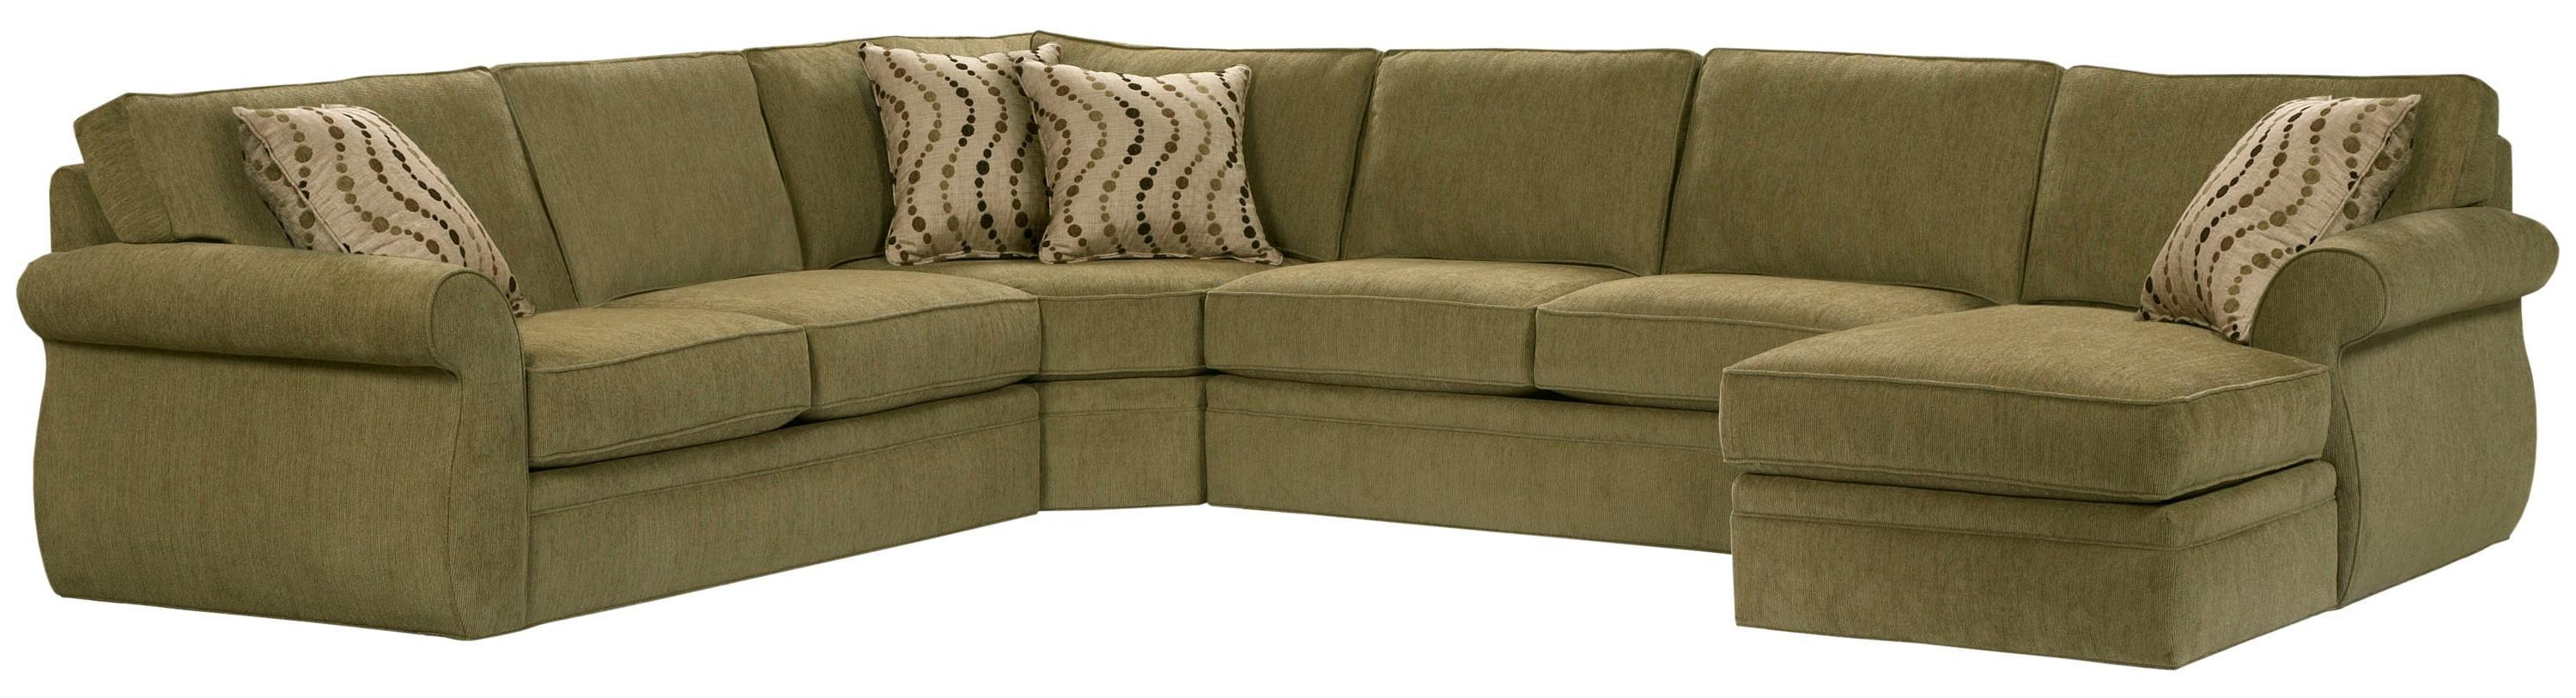 Broyhill Furniture Veronica Right Arm Facing Customizable Chaise For Broyhill Sectional Sofa (Image 9 of 15)